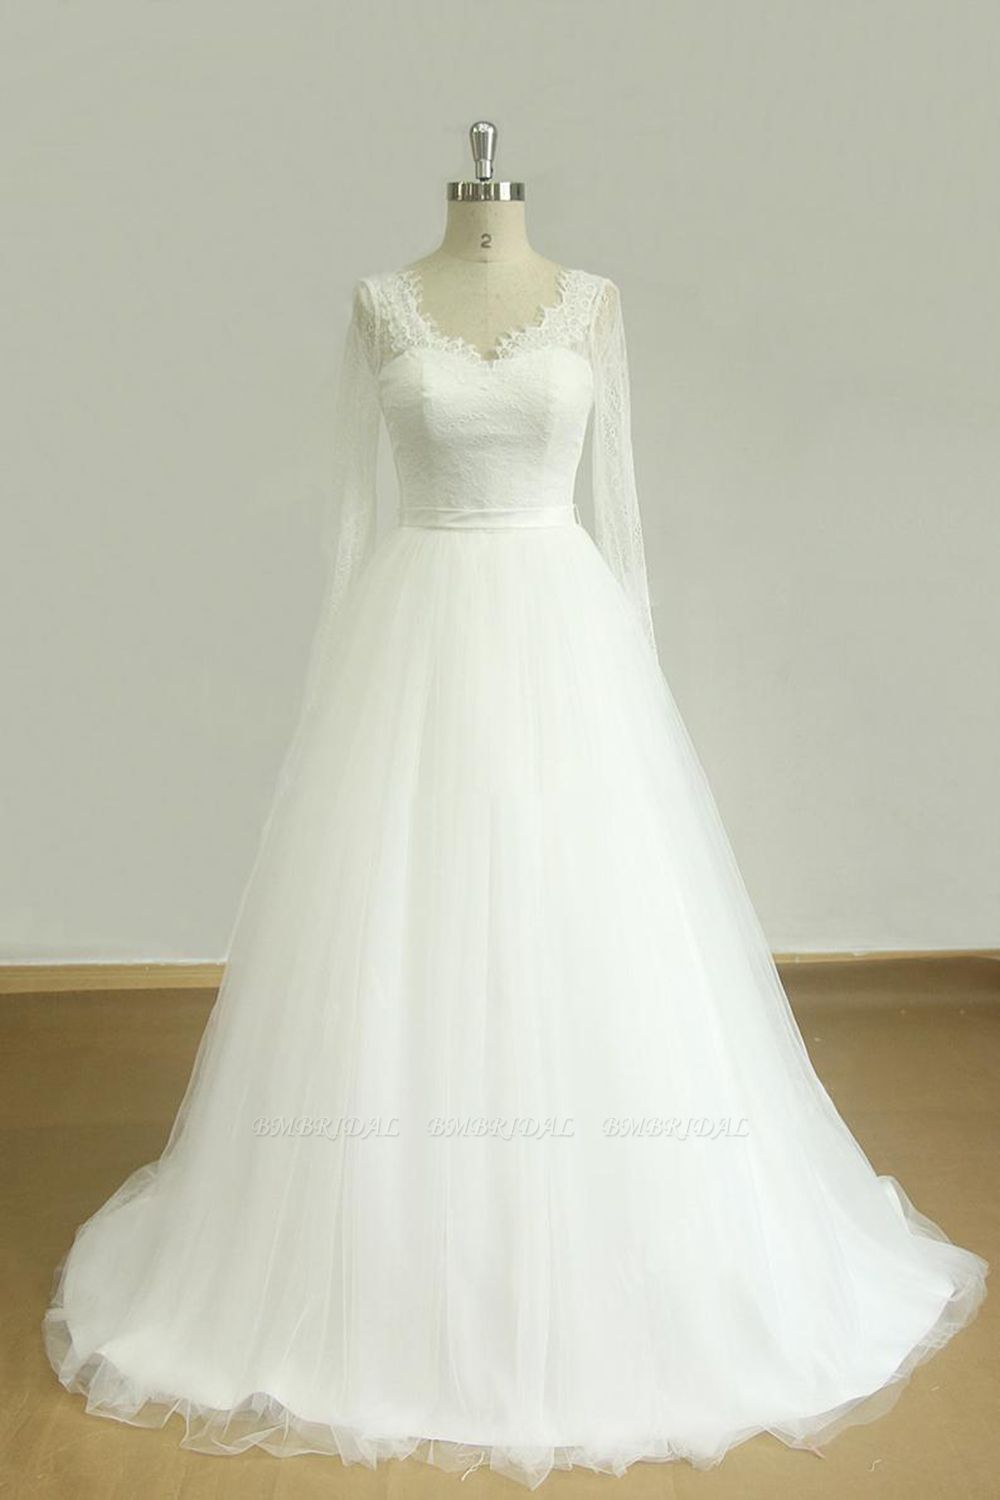 Affordable A-line White Lace Tulle Wedding Dress Longsleeves V-neck Bridal Gowns On Sale